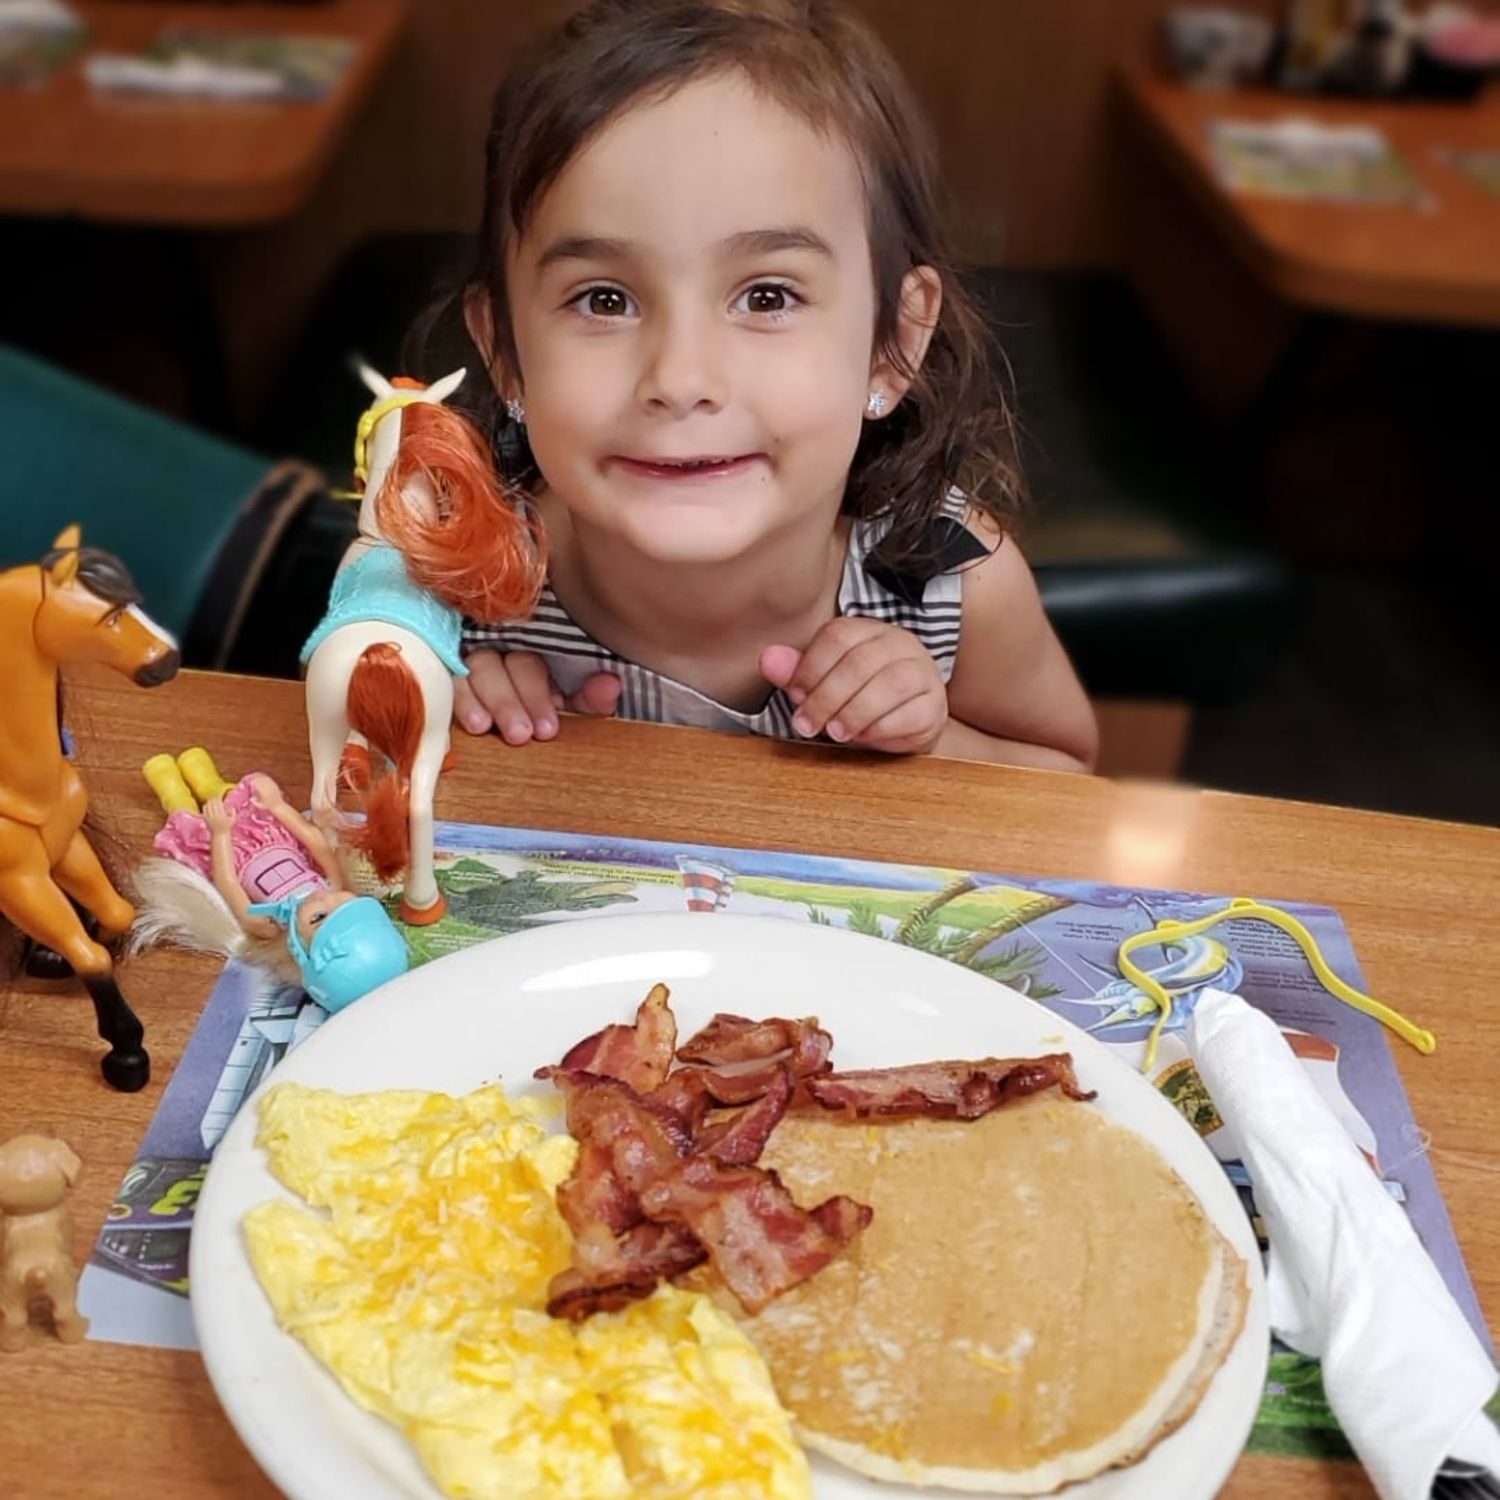 young girl smiling with a breakfast plate